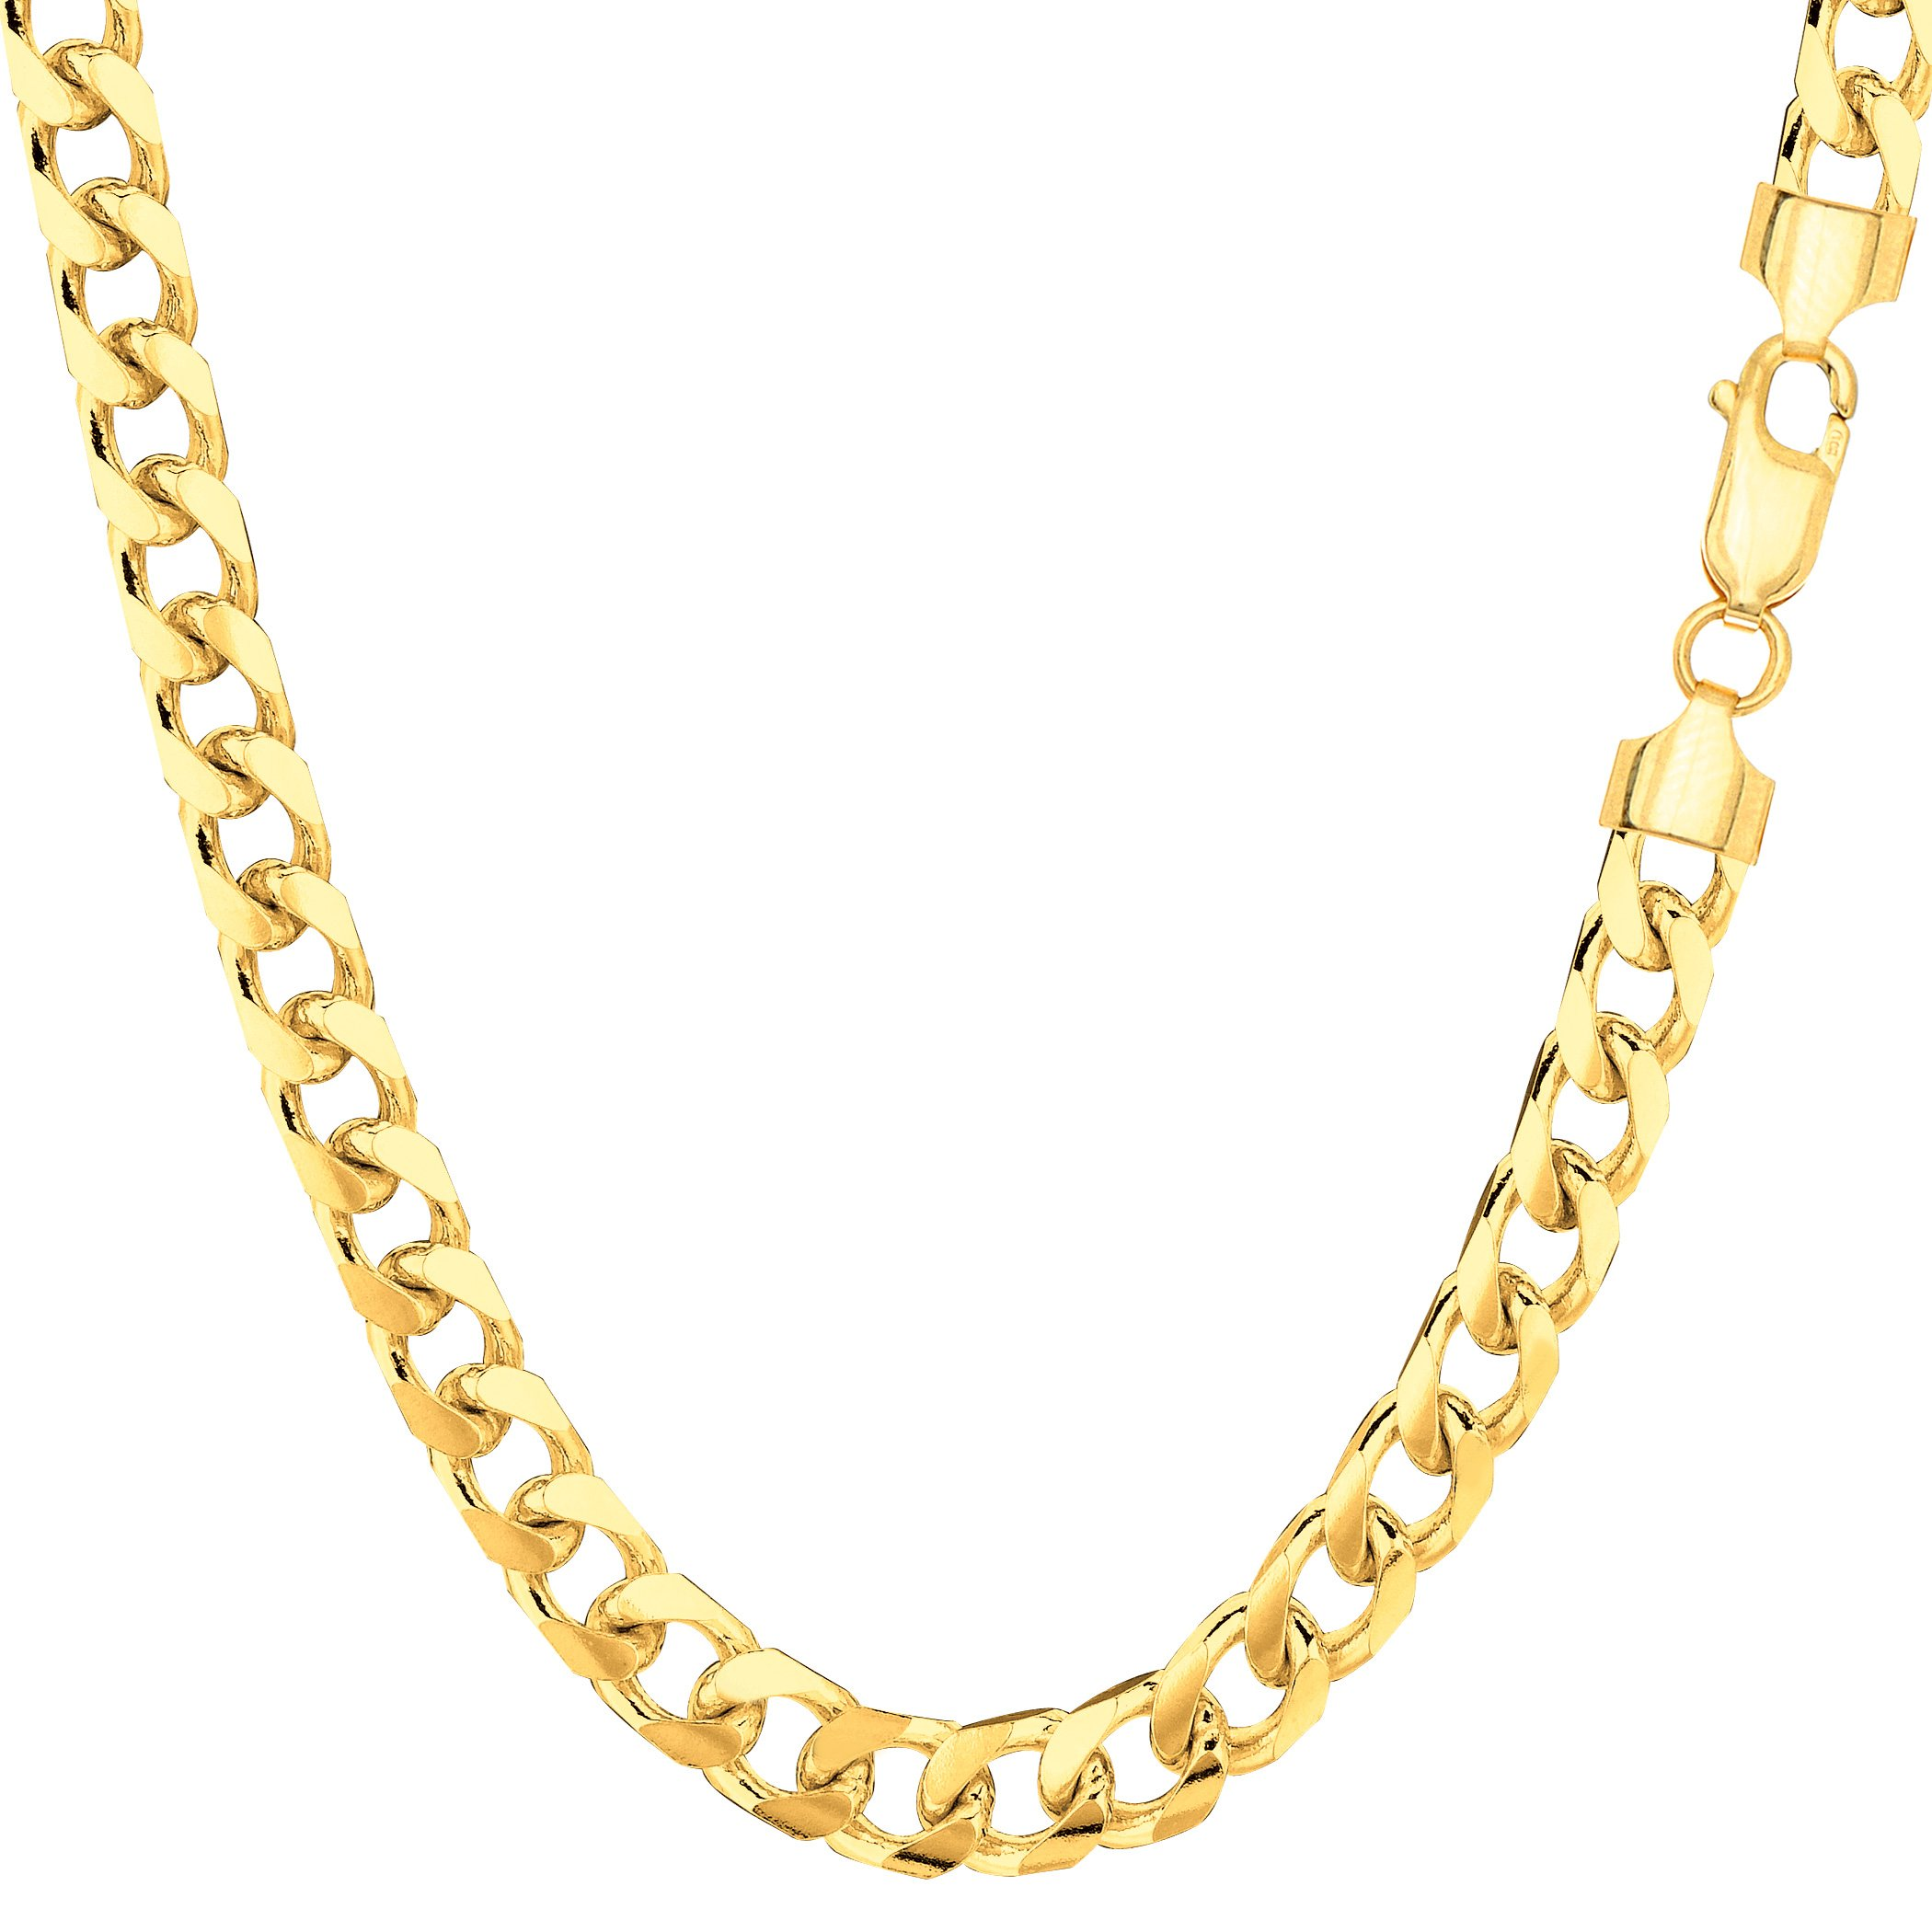 14k Yellow Gold Miami Cuban Link Chain Necklace - Width 5mm, 24''